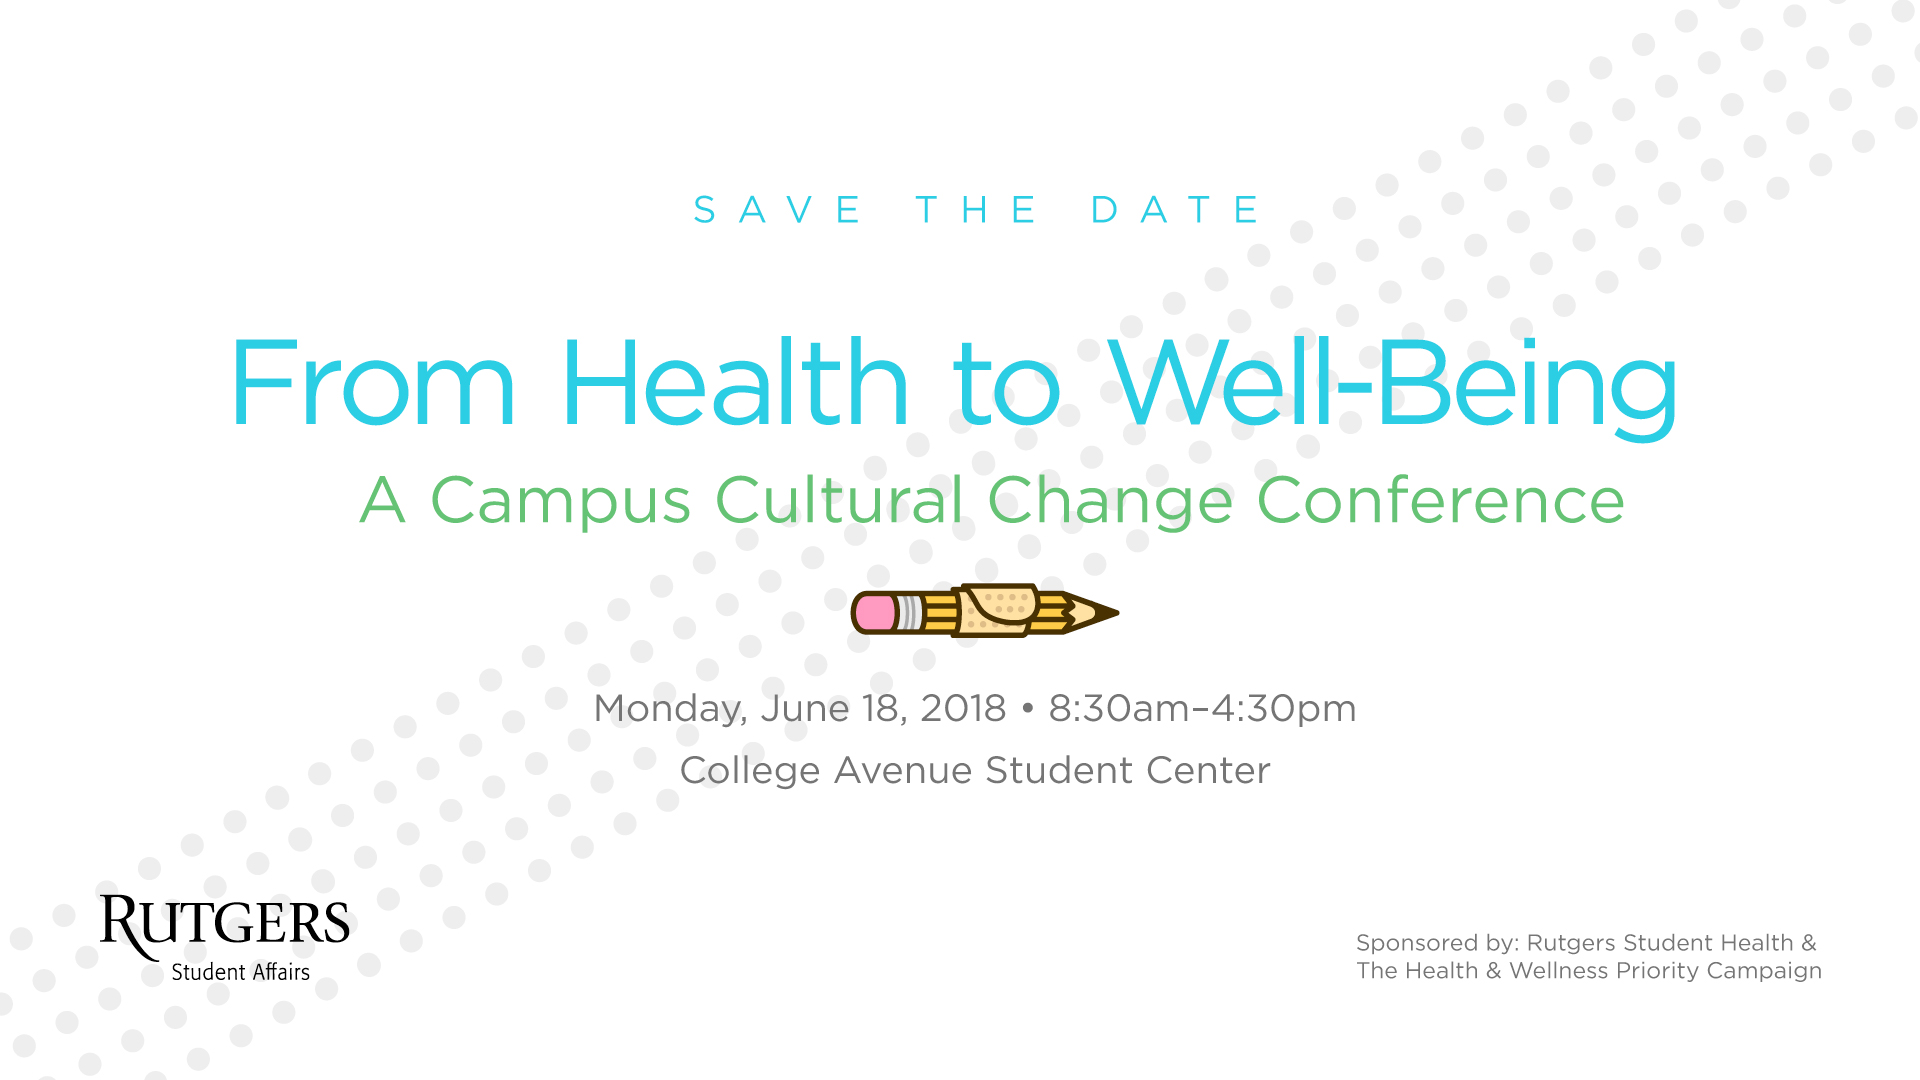 From Health to Well-Being: A Campus Cultural Change Conference - Monday, June 18, 2018 - 8:30am - 4:30pm, Located at the College Ave Student Center